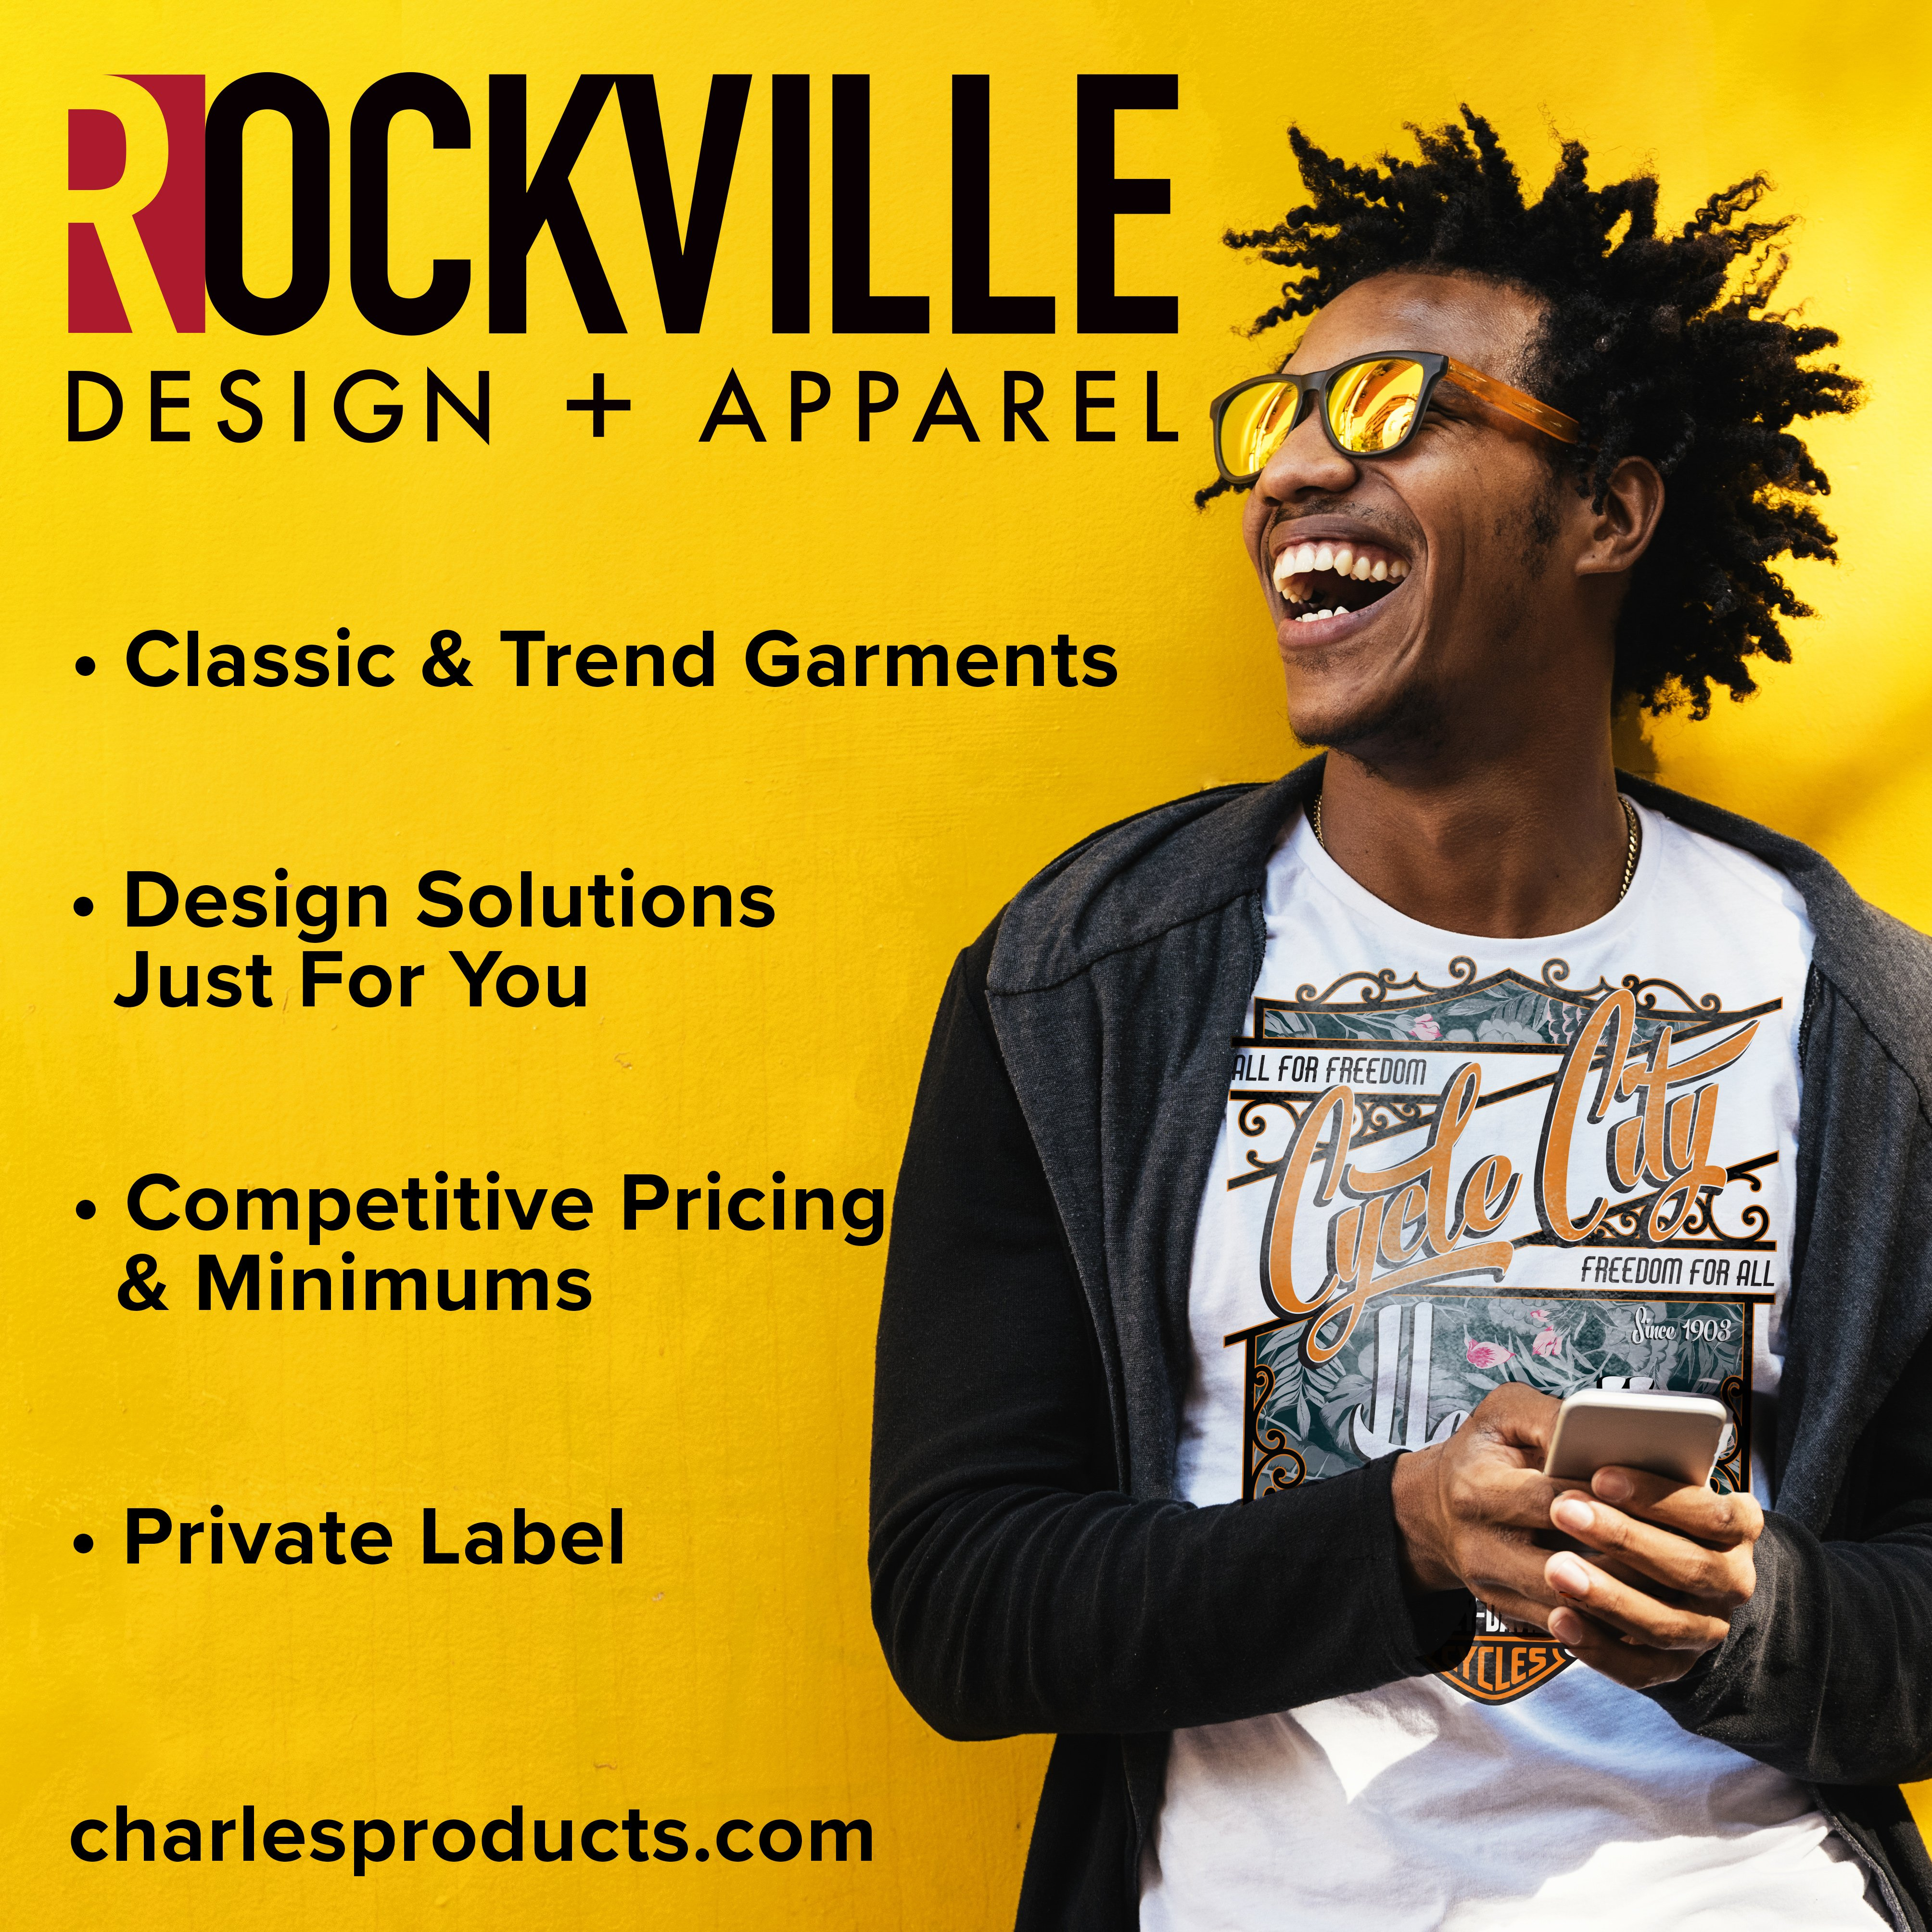 ROCKVILLE Design & Apparel Is Introduced